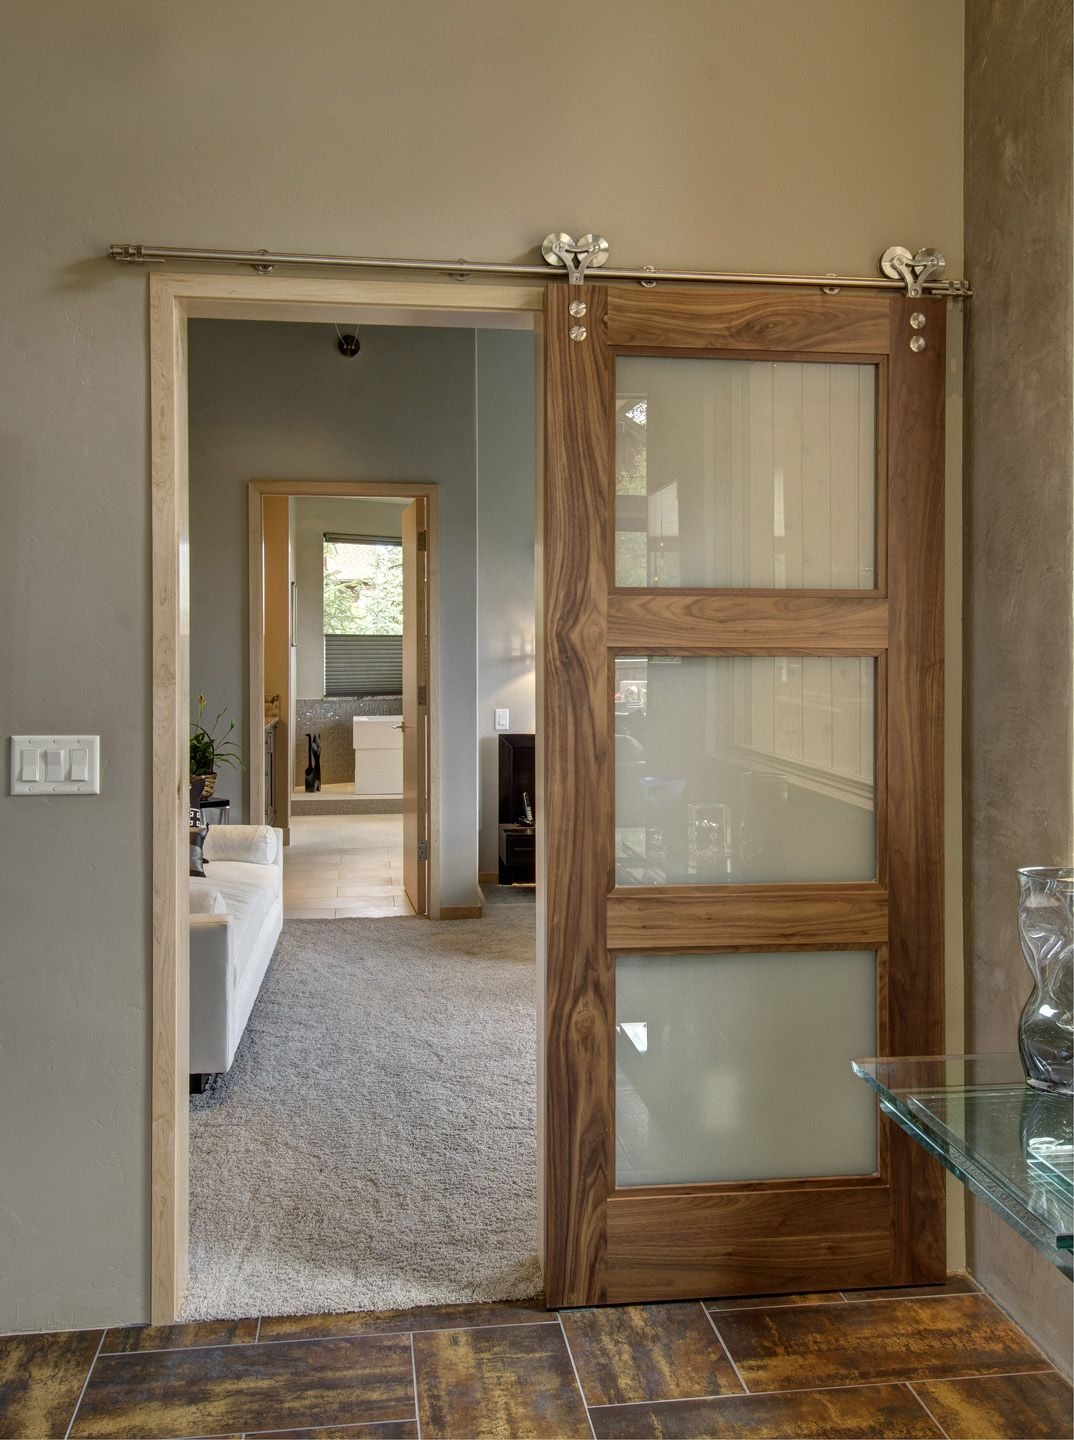 Sliding Barn Doors Don T Have To Be Rustic Sun Mountain Glass Barn Doors Interior Sliding Barn Doors Sliding Doors Interior